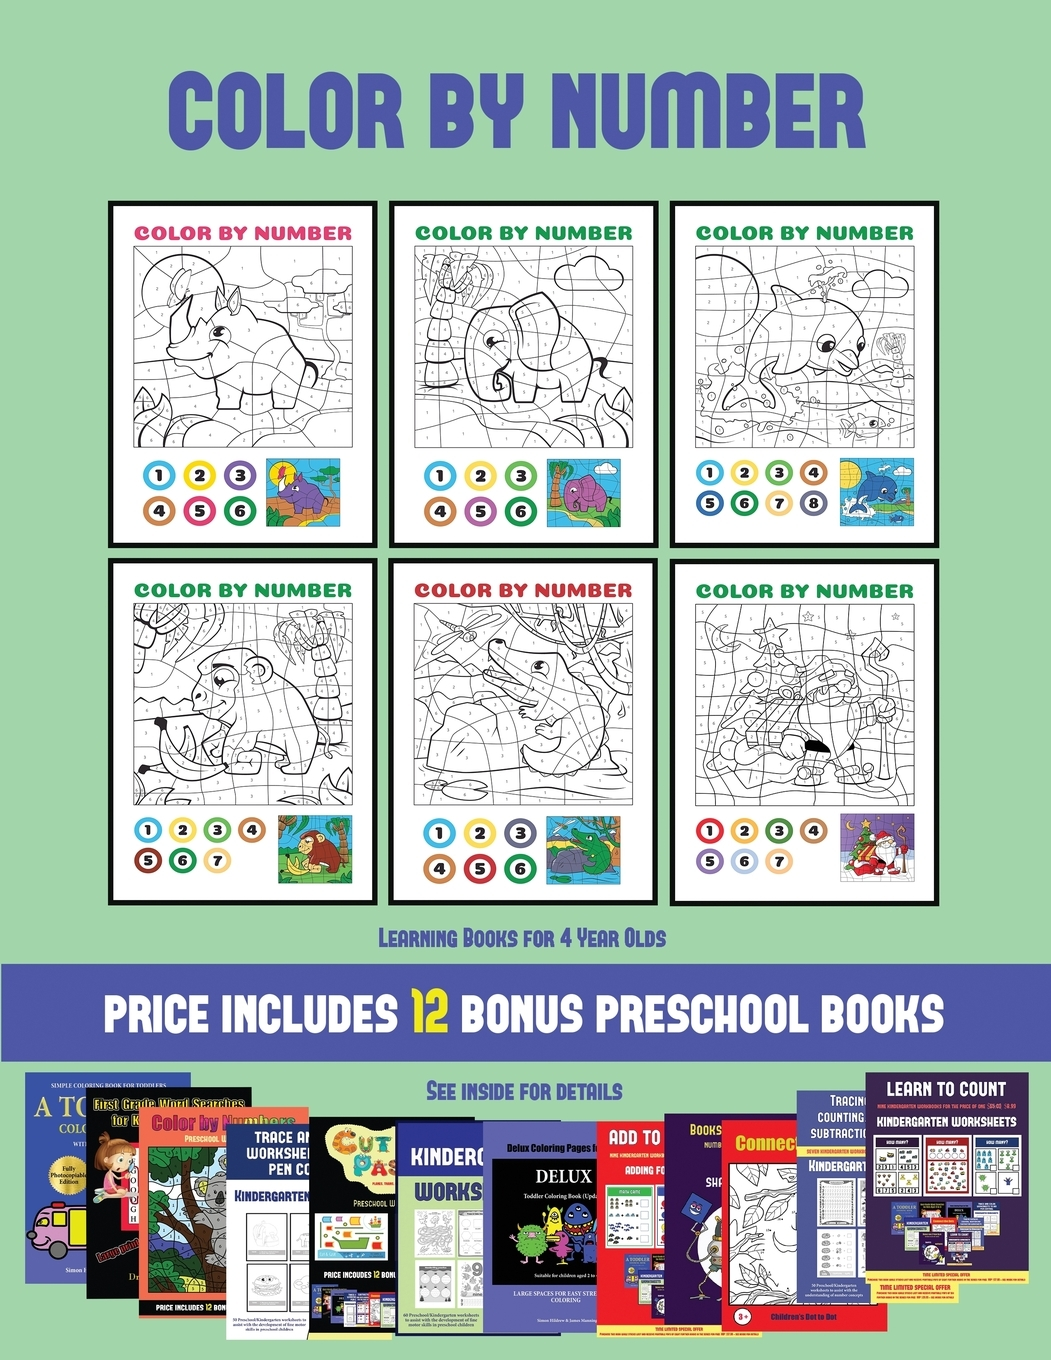 Learning Books For 4 Year Olds Learning Books For 4 Year